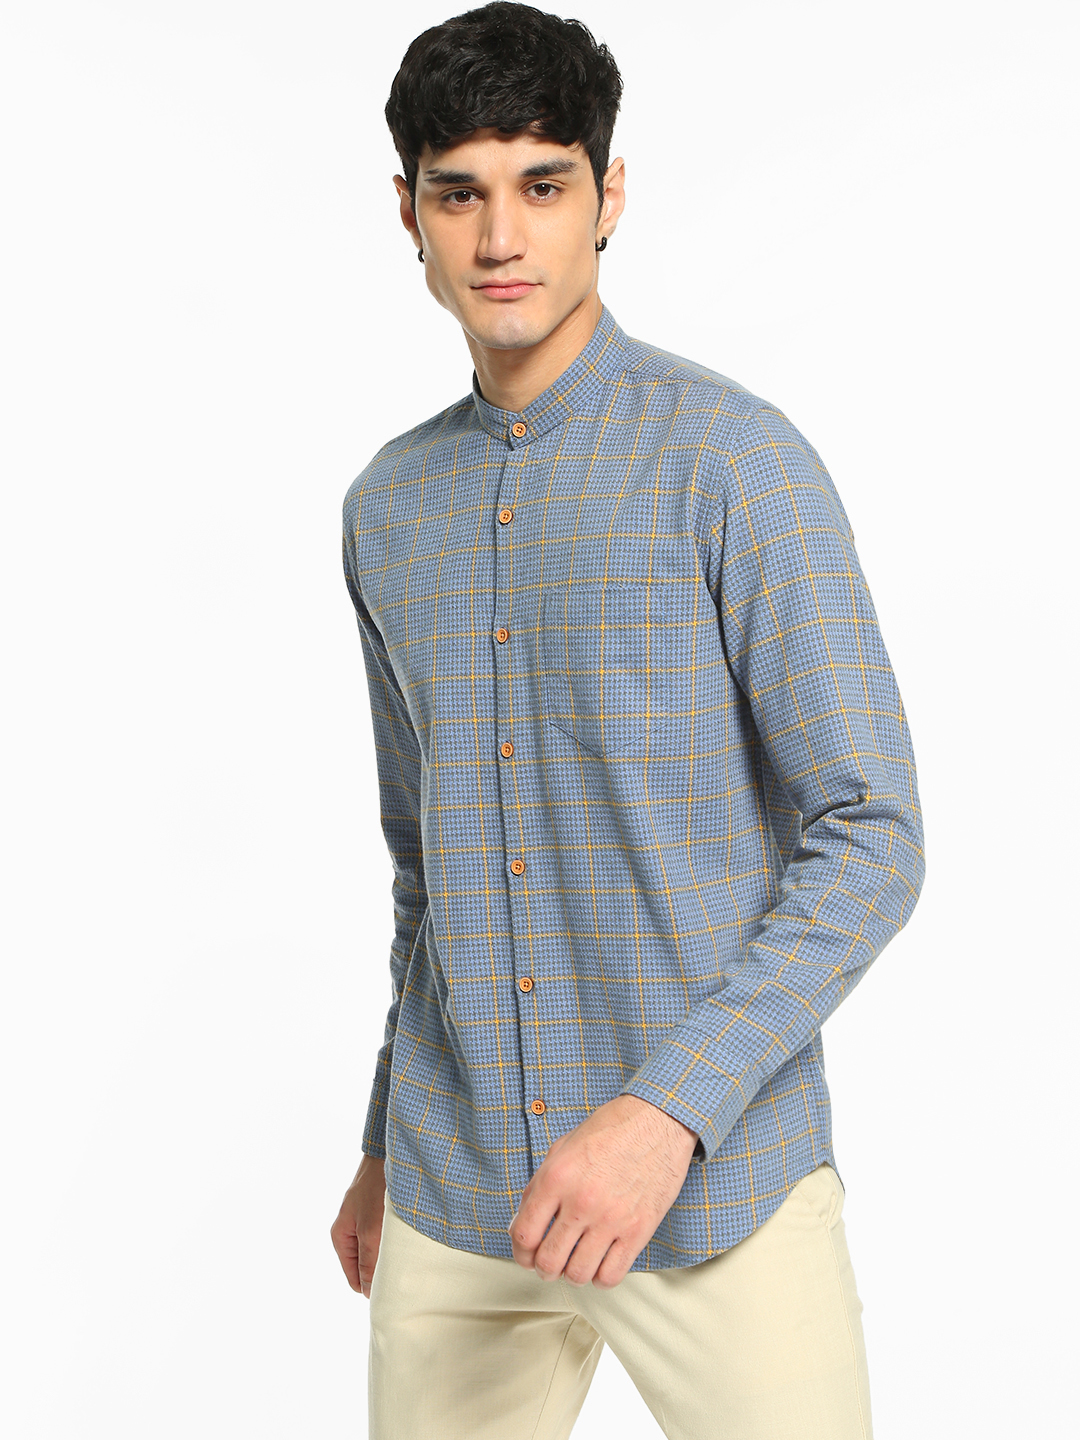 AMON Multi Woven Multi-Check Grandad Collar Shirt 1